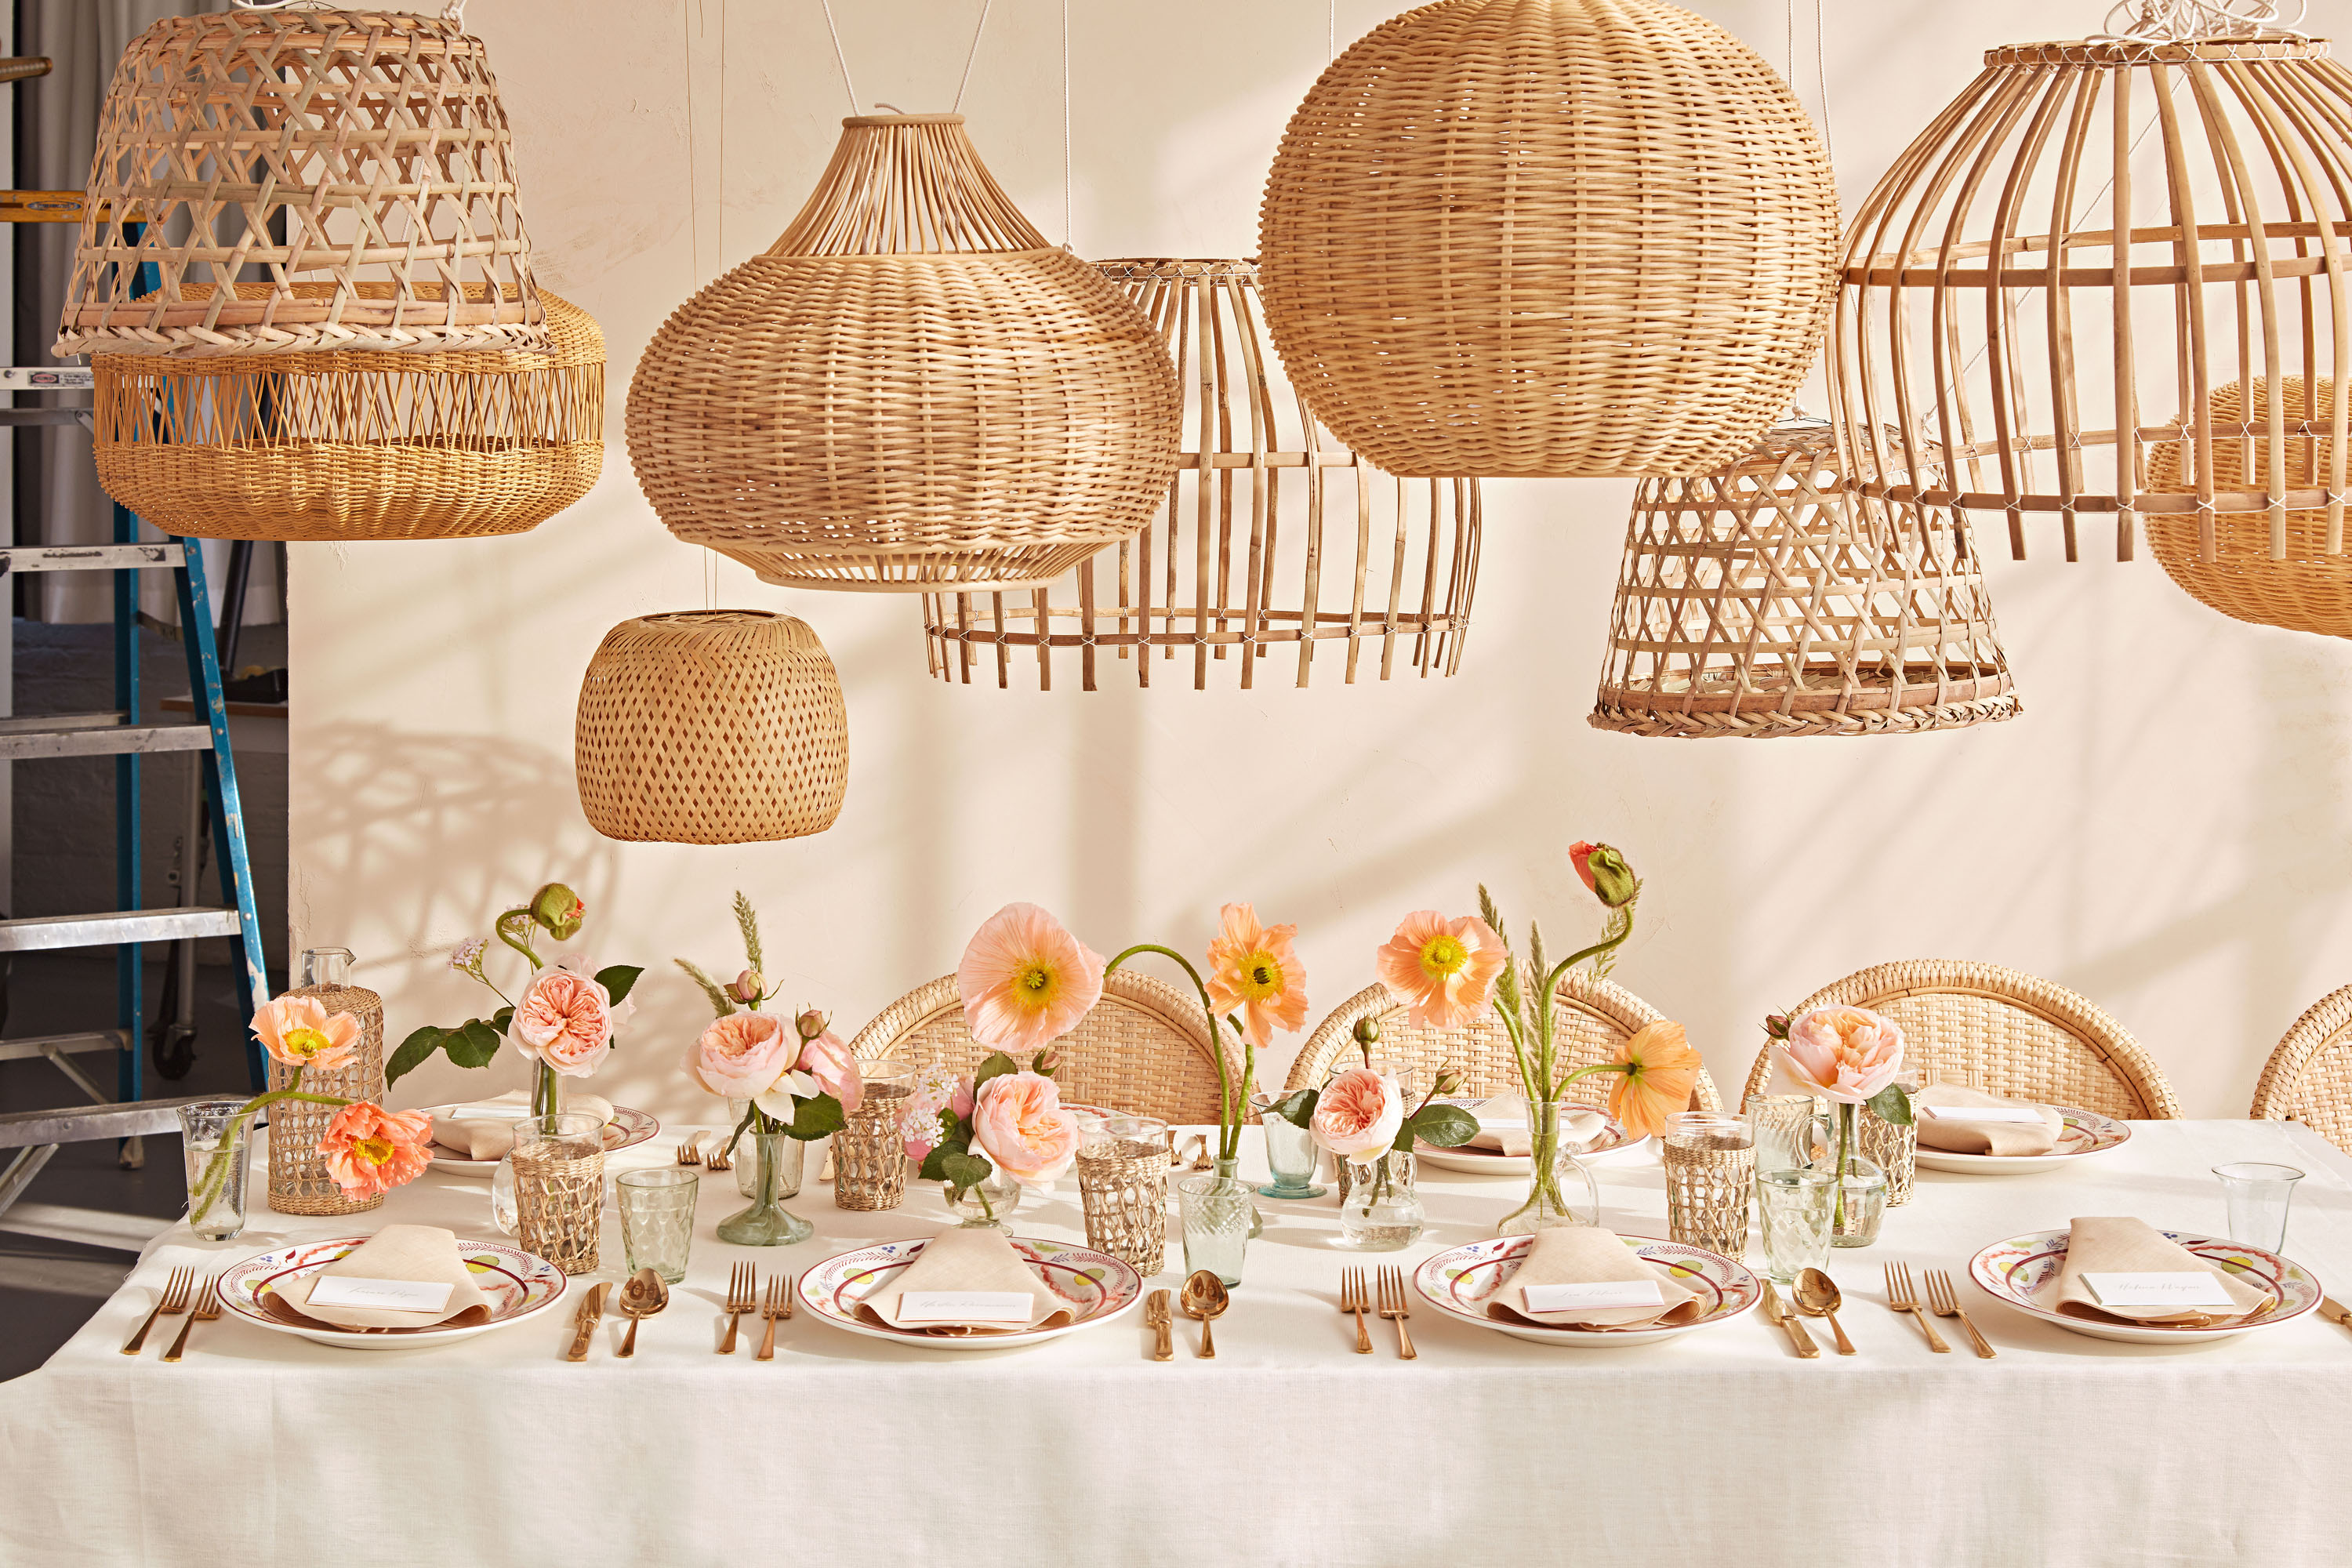 wicker table setting lamps